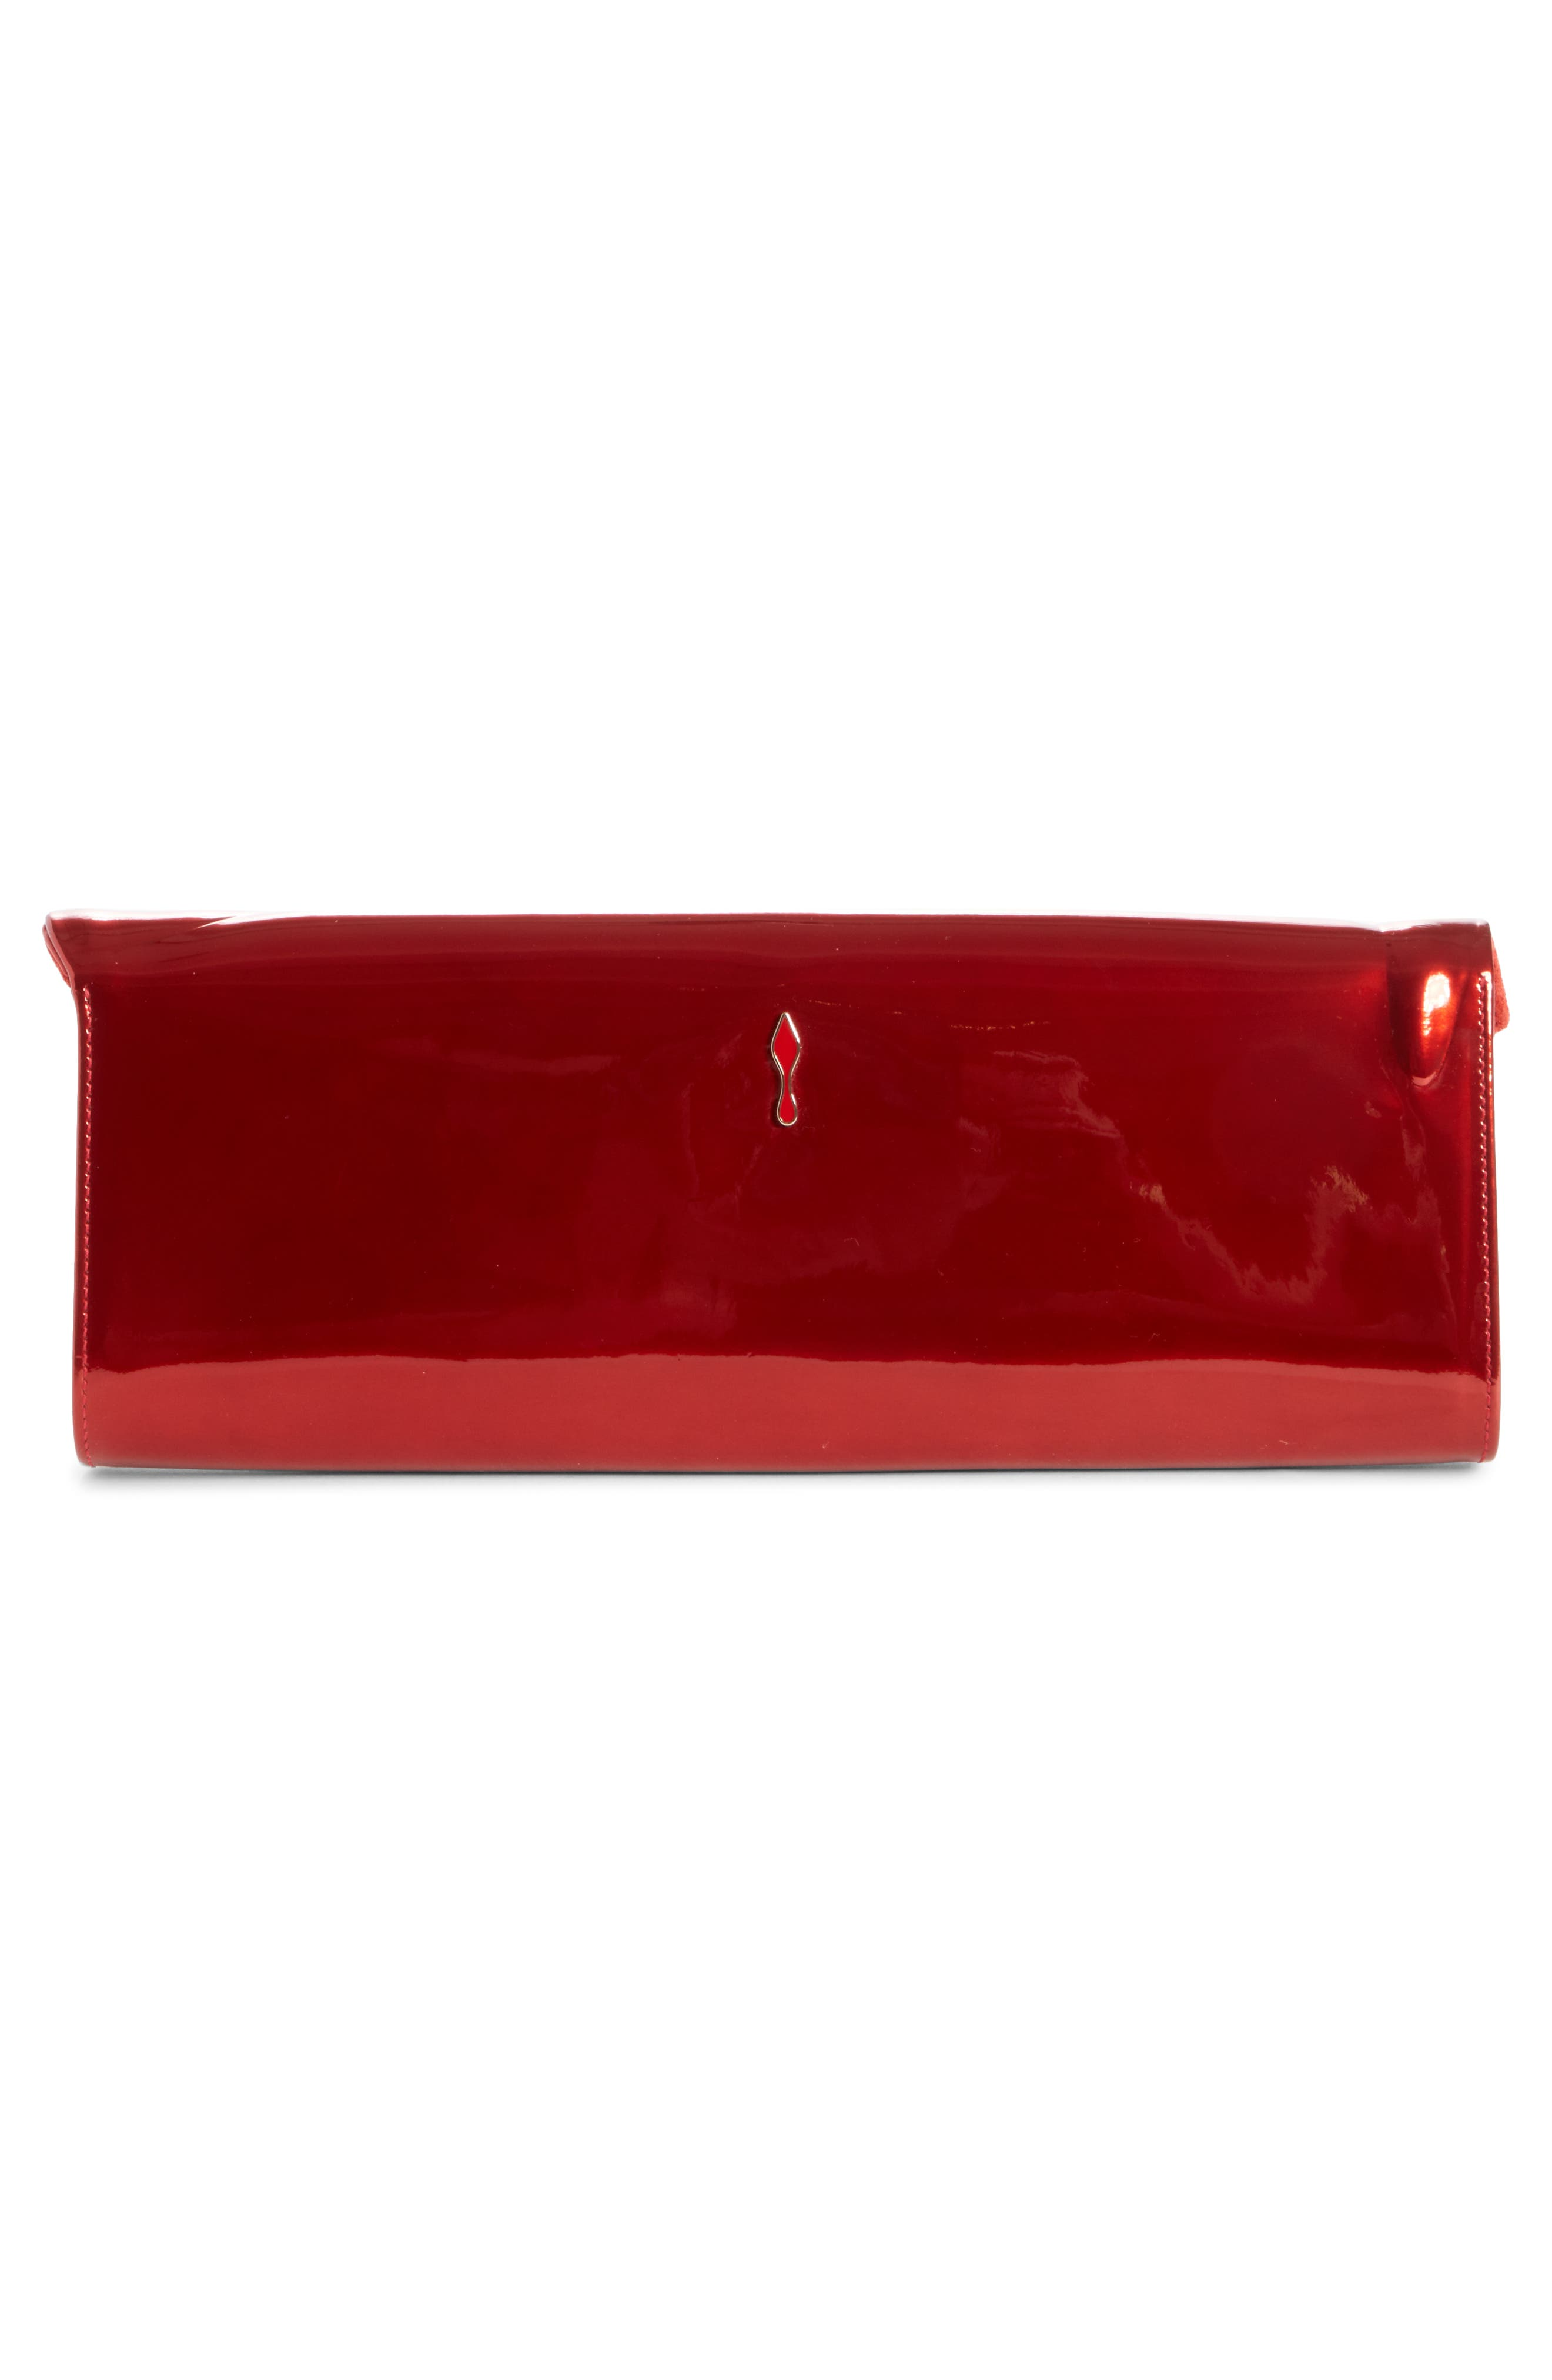 'So Kate' Patent Leather Clutch,                             Alternate thumbnail 2, color,                             Red